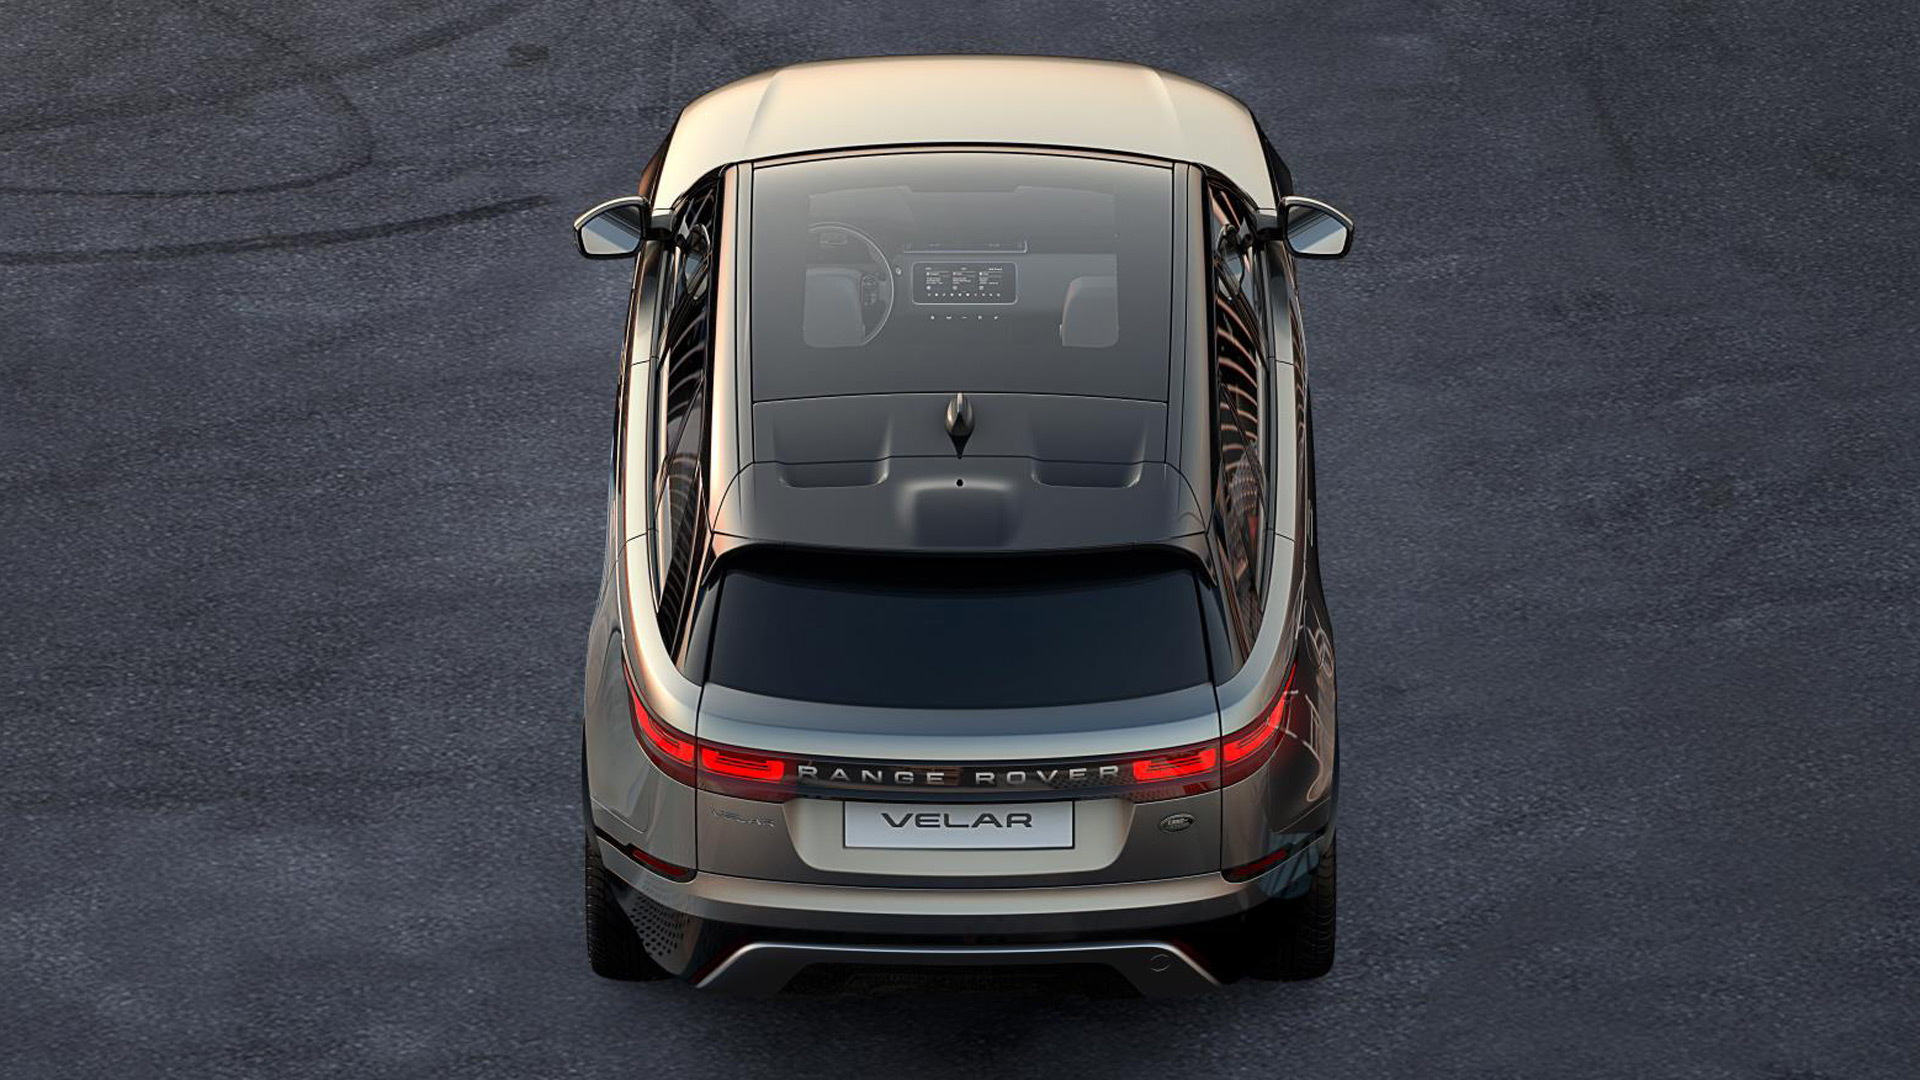 Teaser for Land Rover Range Rover Velar debuting at 2017 Geneva auto show